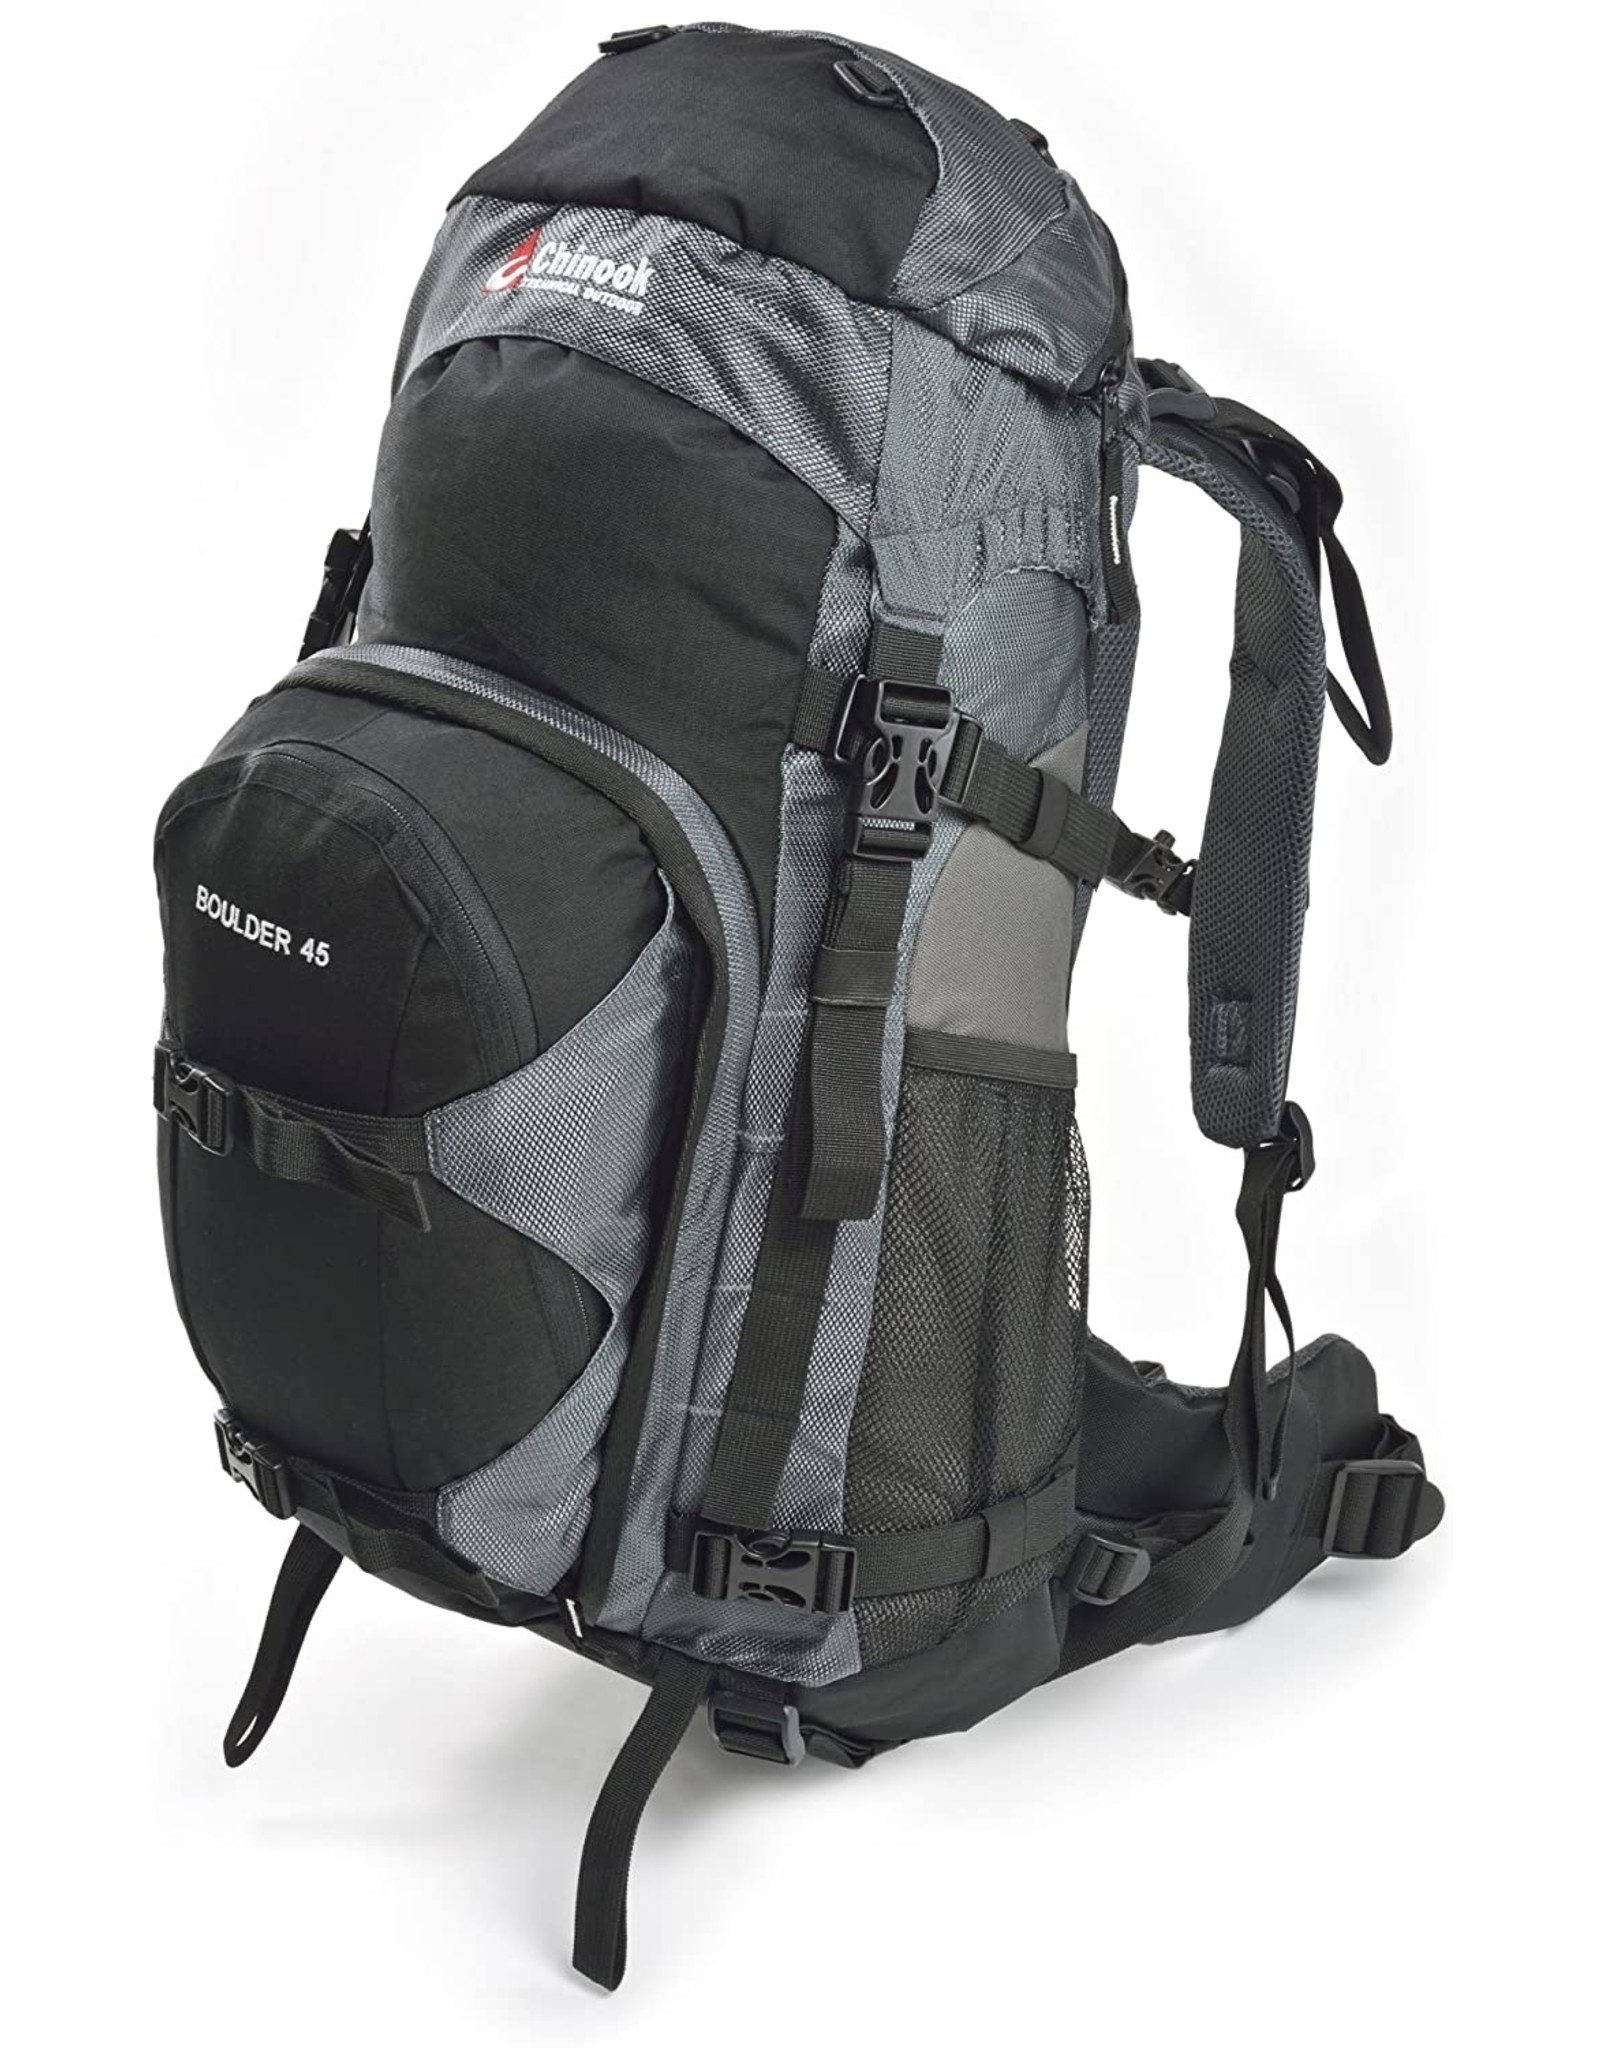 CHINOOK TECHNICAL OUTDOOR Chinook Boulder 45 Backpack